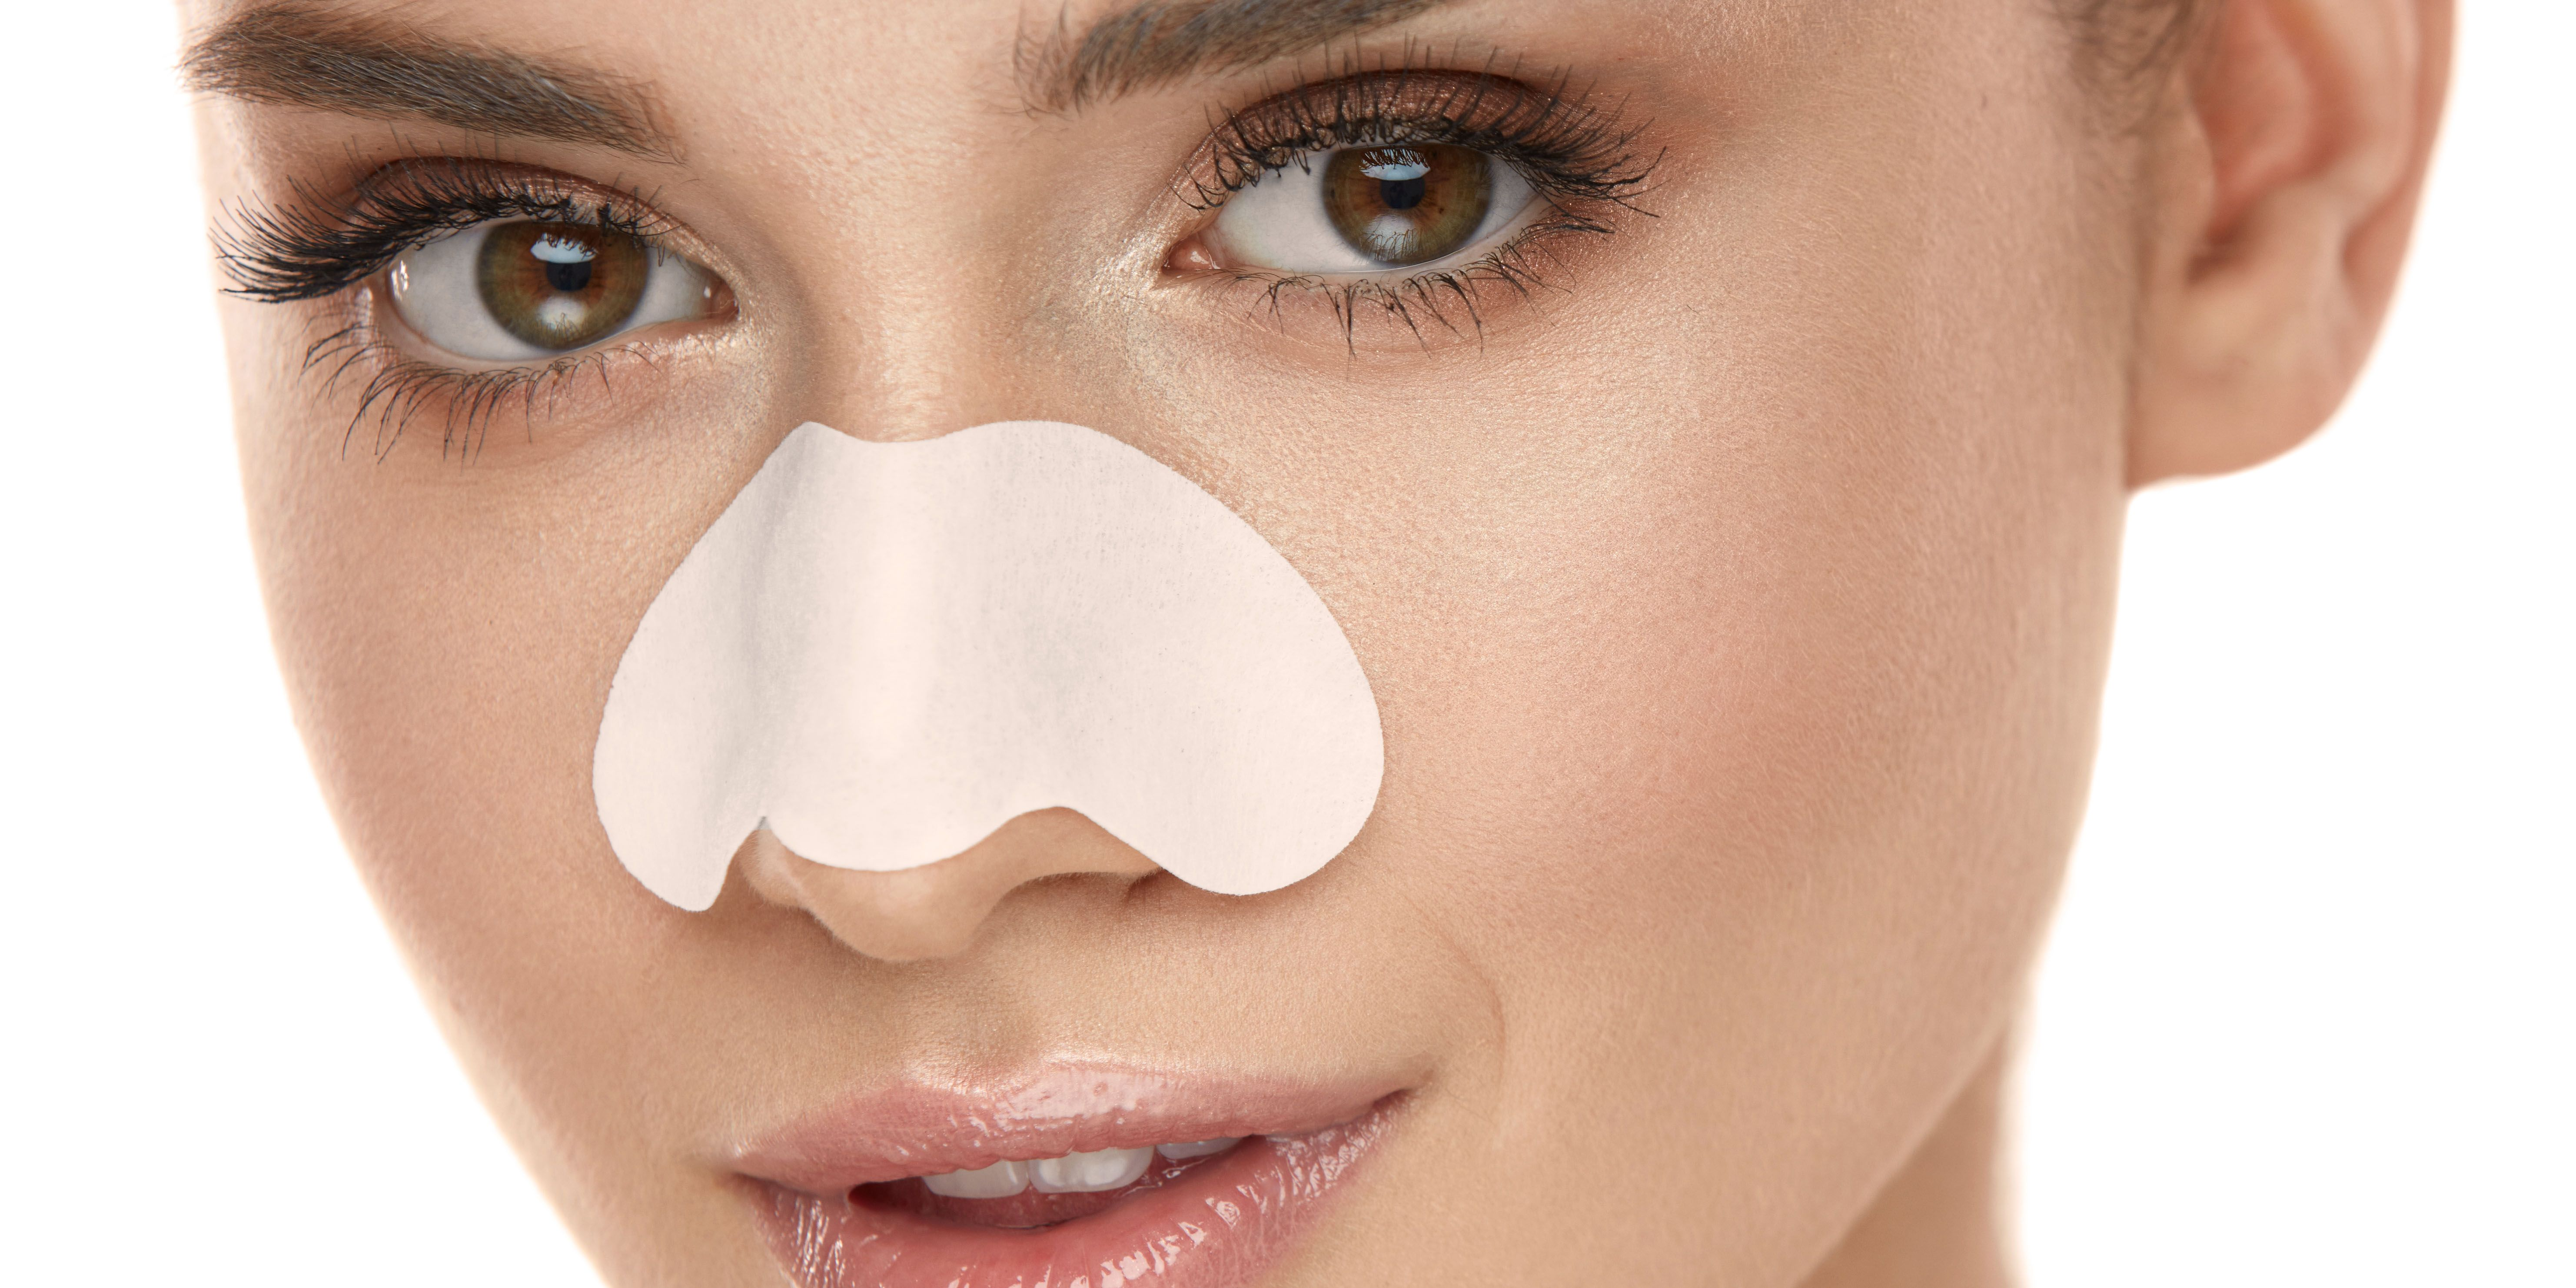 What are Pore Strips and What Do They Do - Best Pore Strips